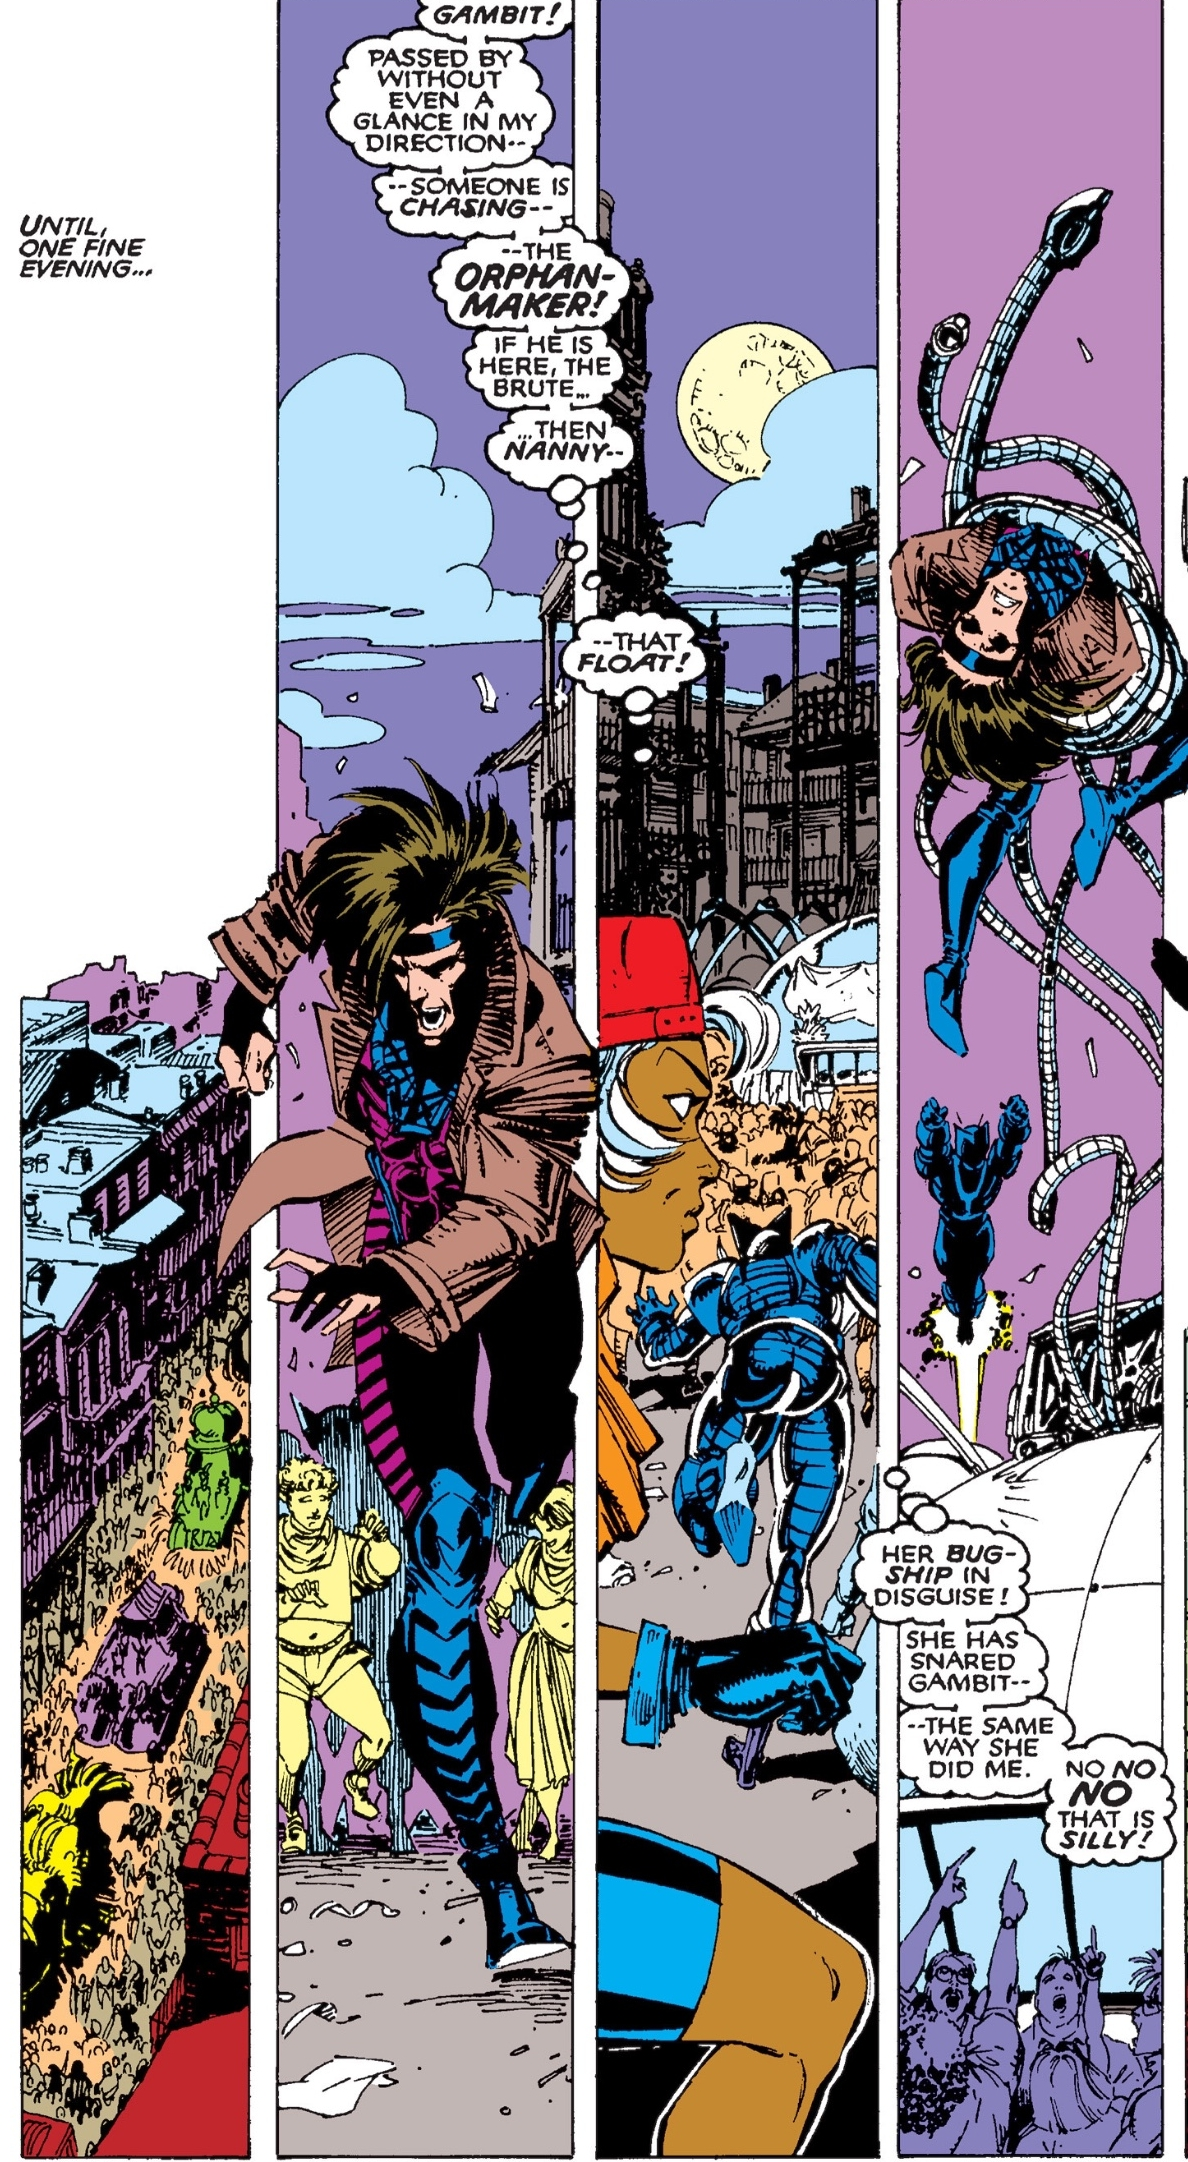 Gambit on Canal Street in New Orleans during Mardi Gras ( Uncanny X-Men #267 ).